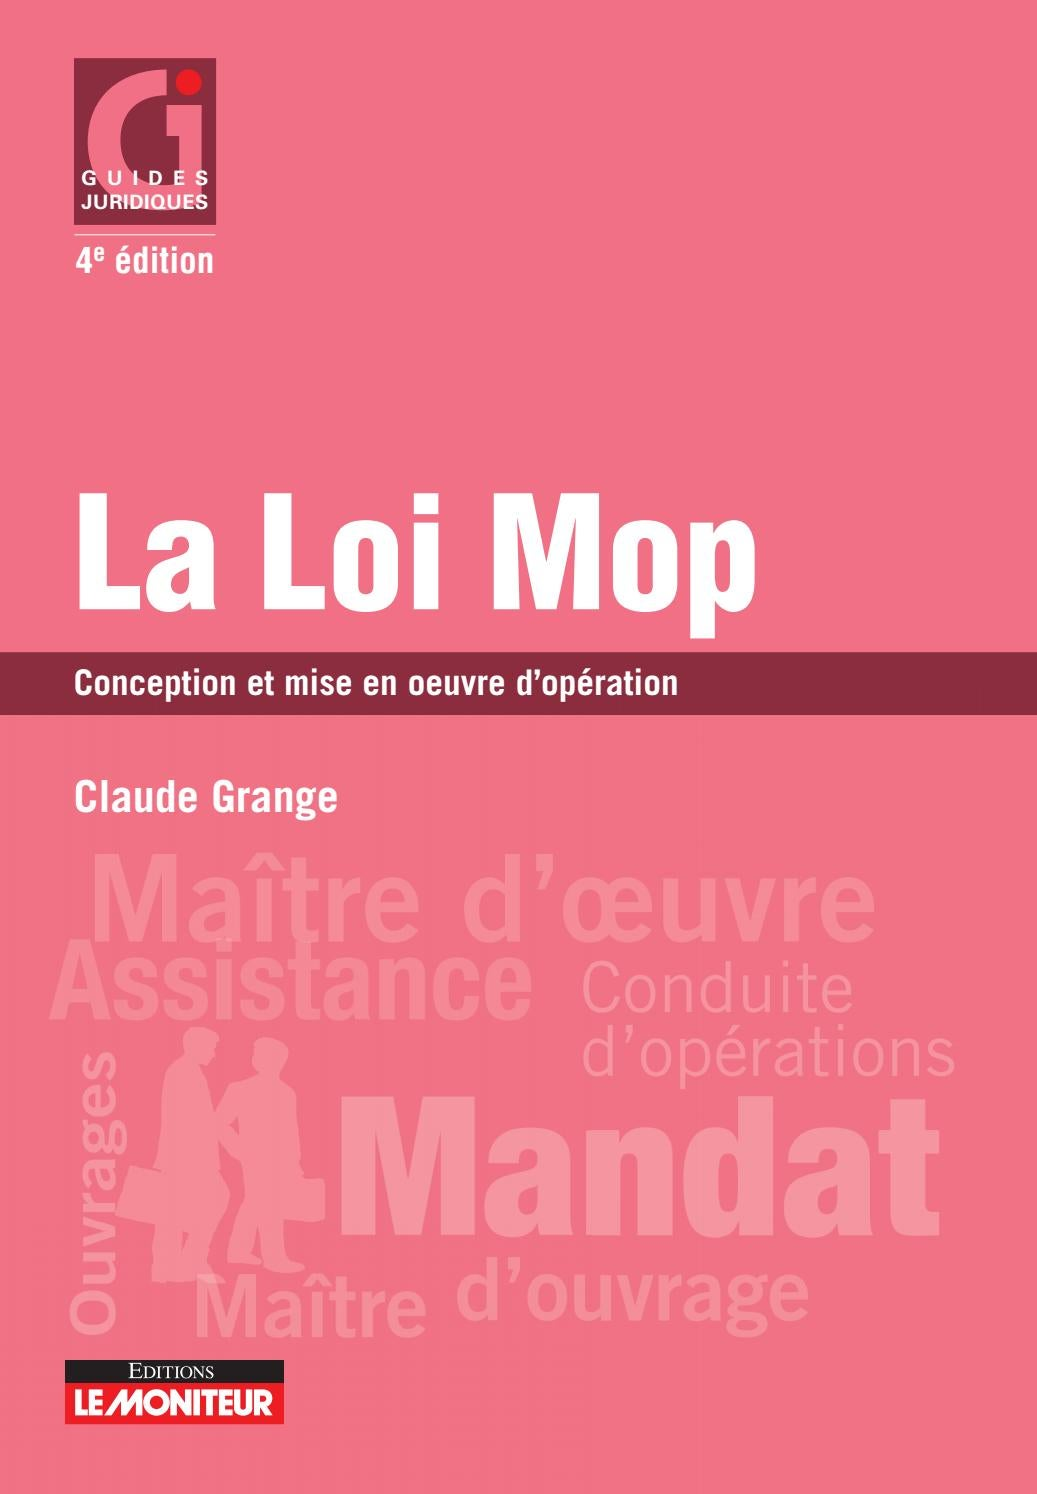 La loi mop 2017 by infopro digital issuu for Loi sur les constructions